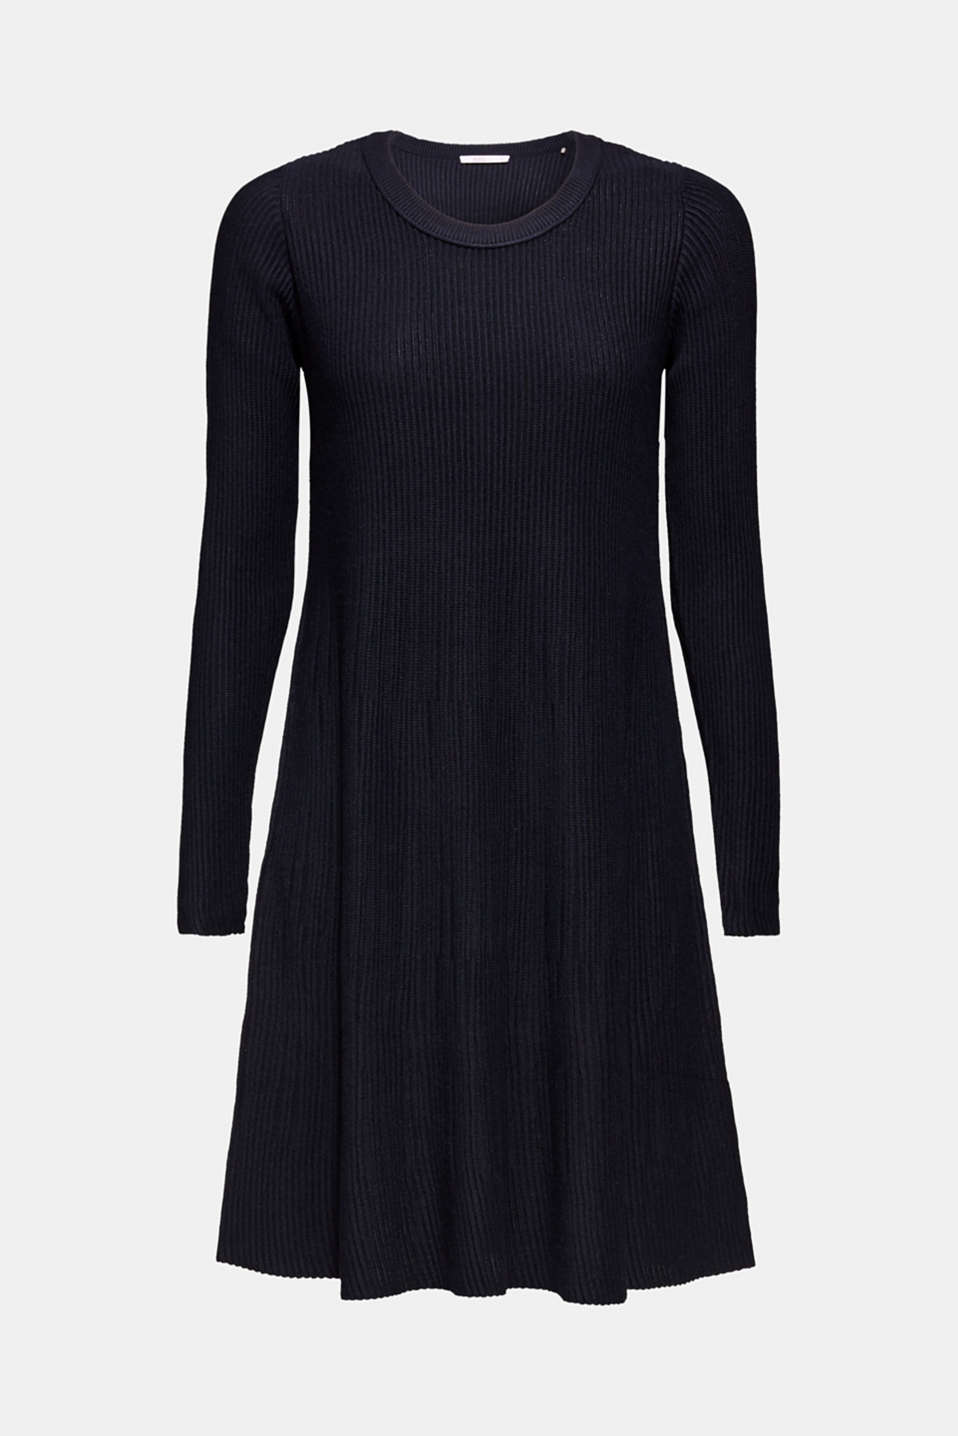 Dress made of a ribbed knit, recycled, NAVY, detail image number 6